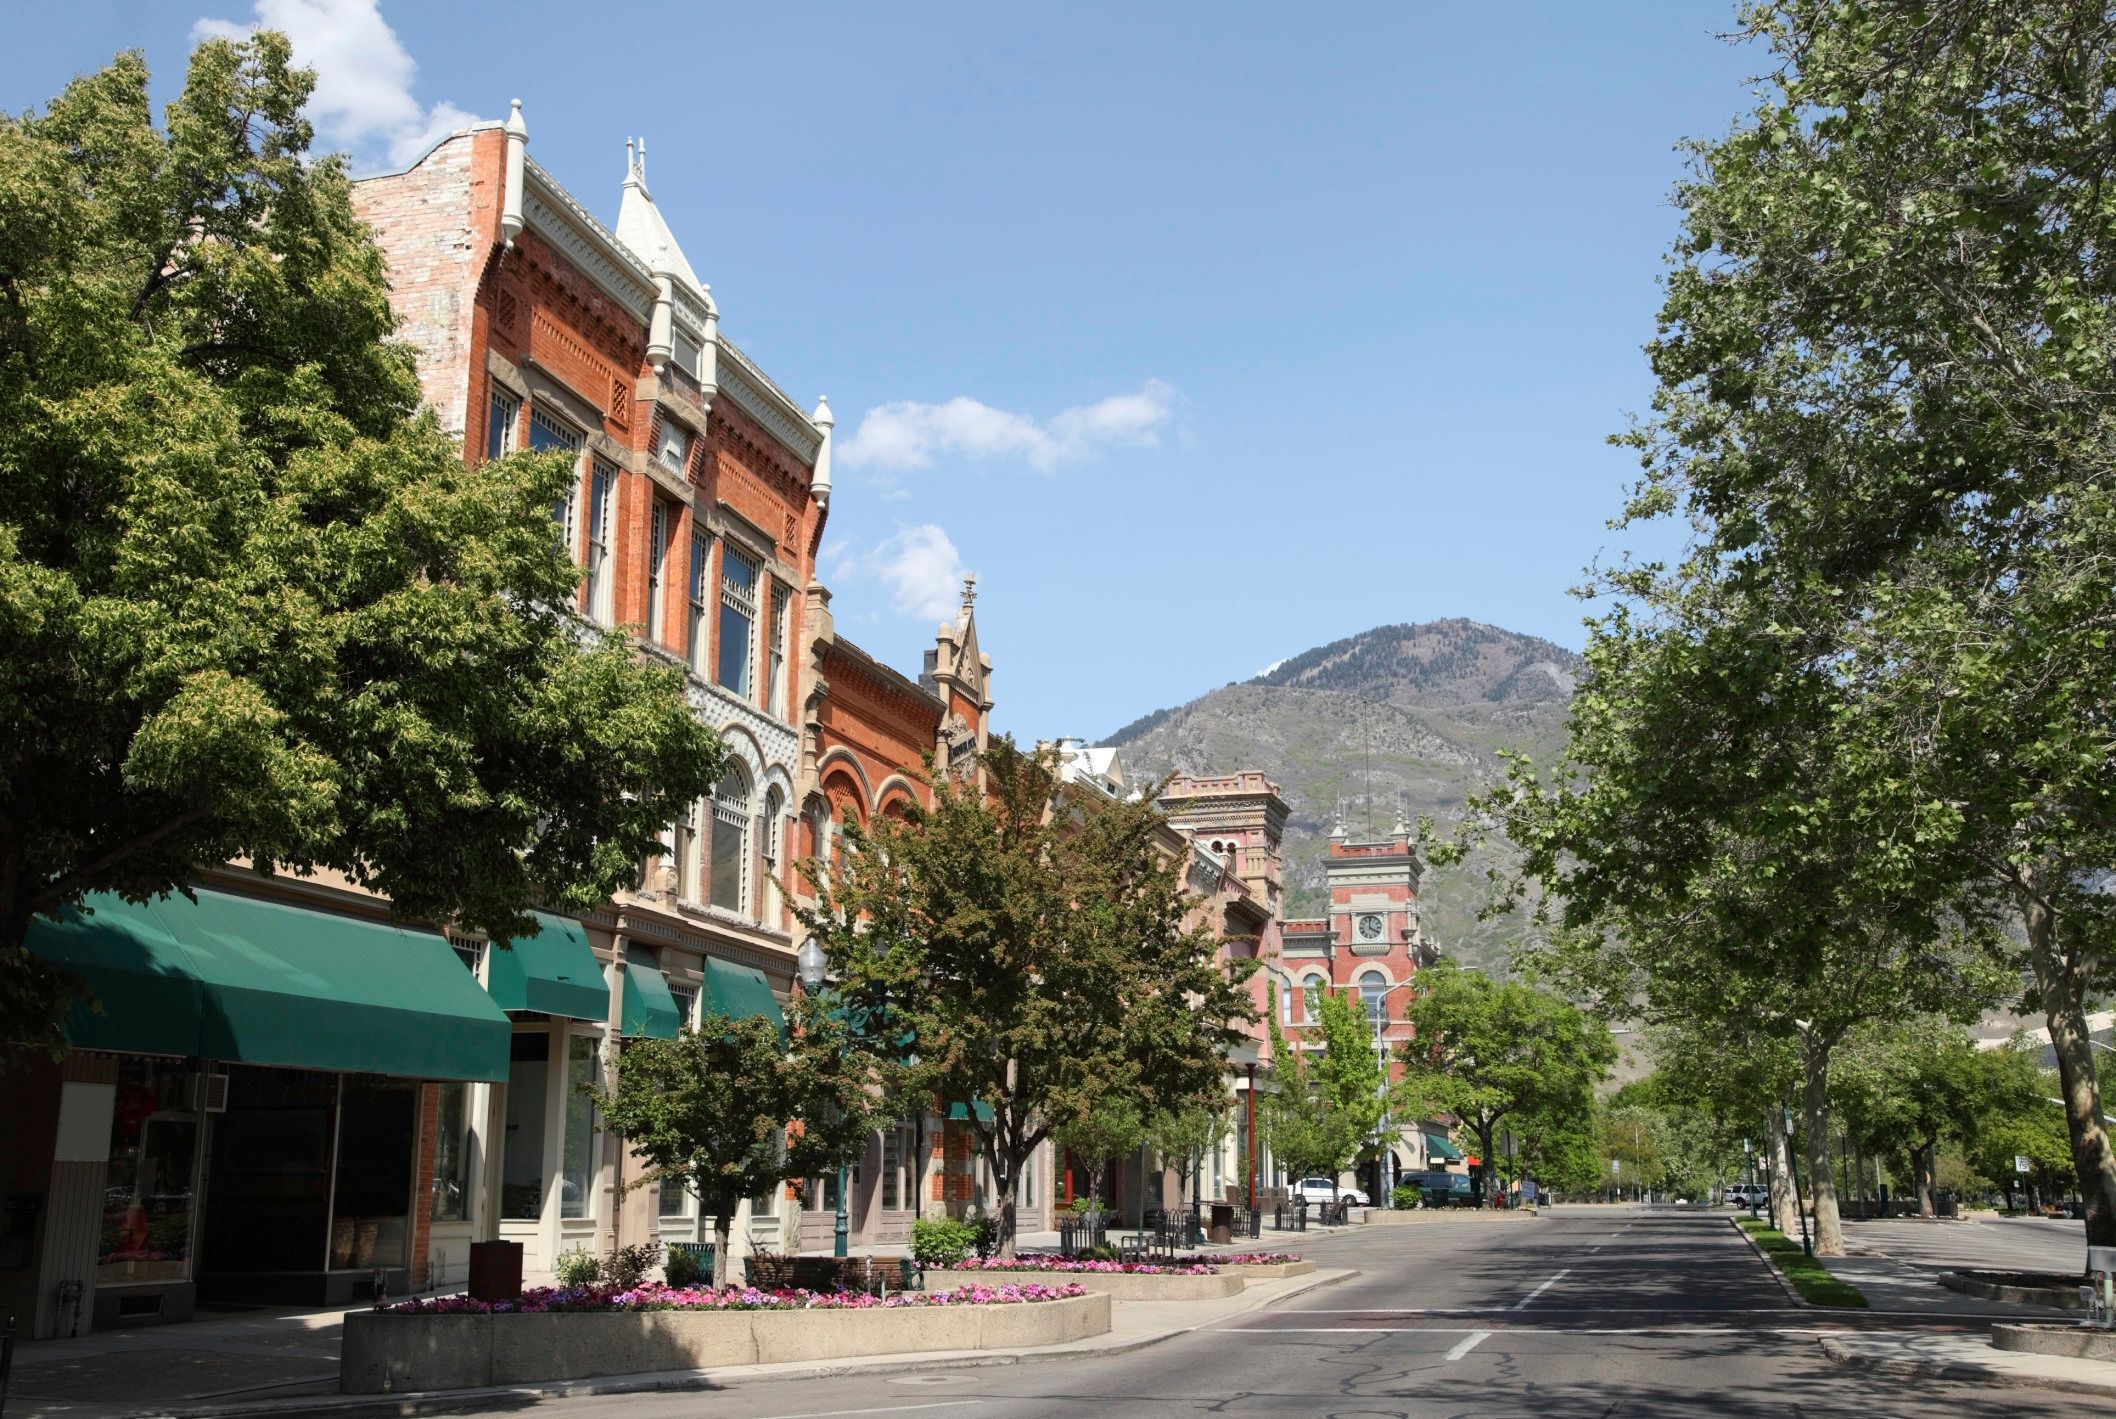 'Provo  is the third-largest city in the U.S. state of Utah, located about 43 miles  south of Salt Lake City along the Wasatch Front. Provo is the county seat of Utah County and is the largest city in Utah County.More Provo images'